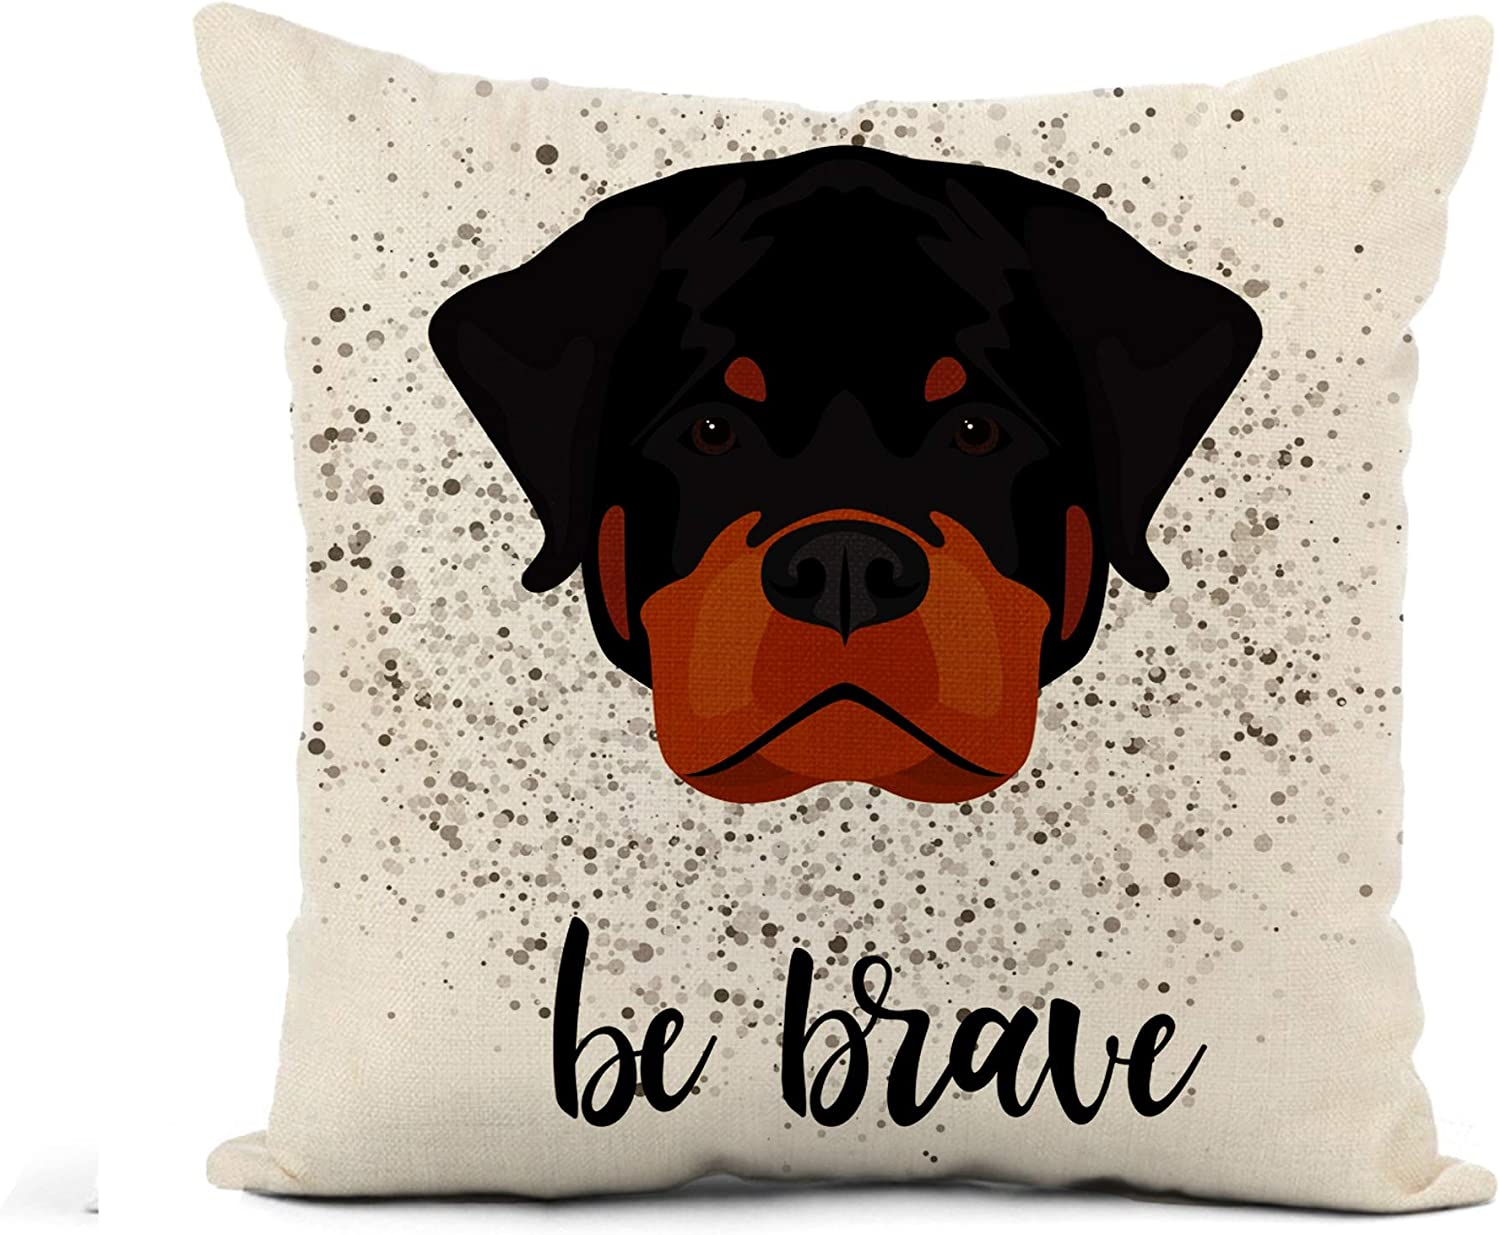 Awowee Flax Throw Pillow Cover Abstract Rottweiler Dog Head Cartoon Black Portrait Pattern Veterinary 20x20 Inches Pillowcase Home Decor Square Cotton Linen Pillow Case Cushion Cover